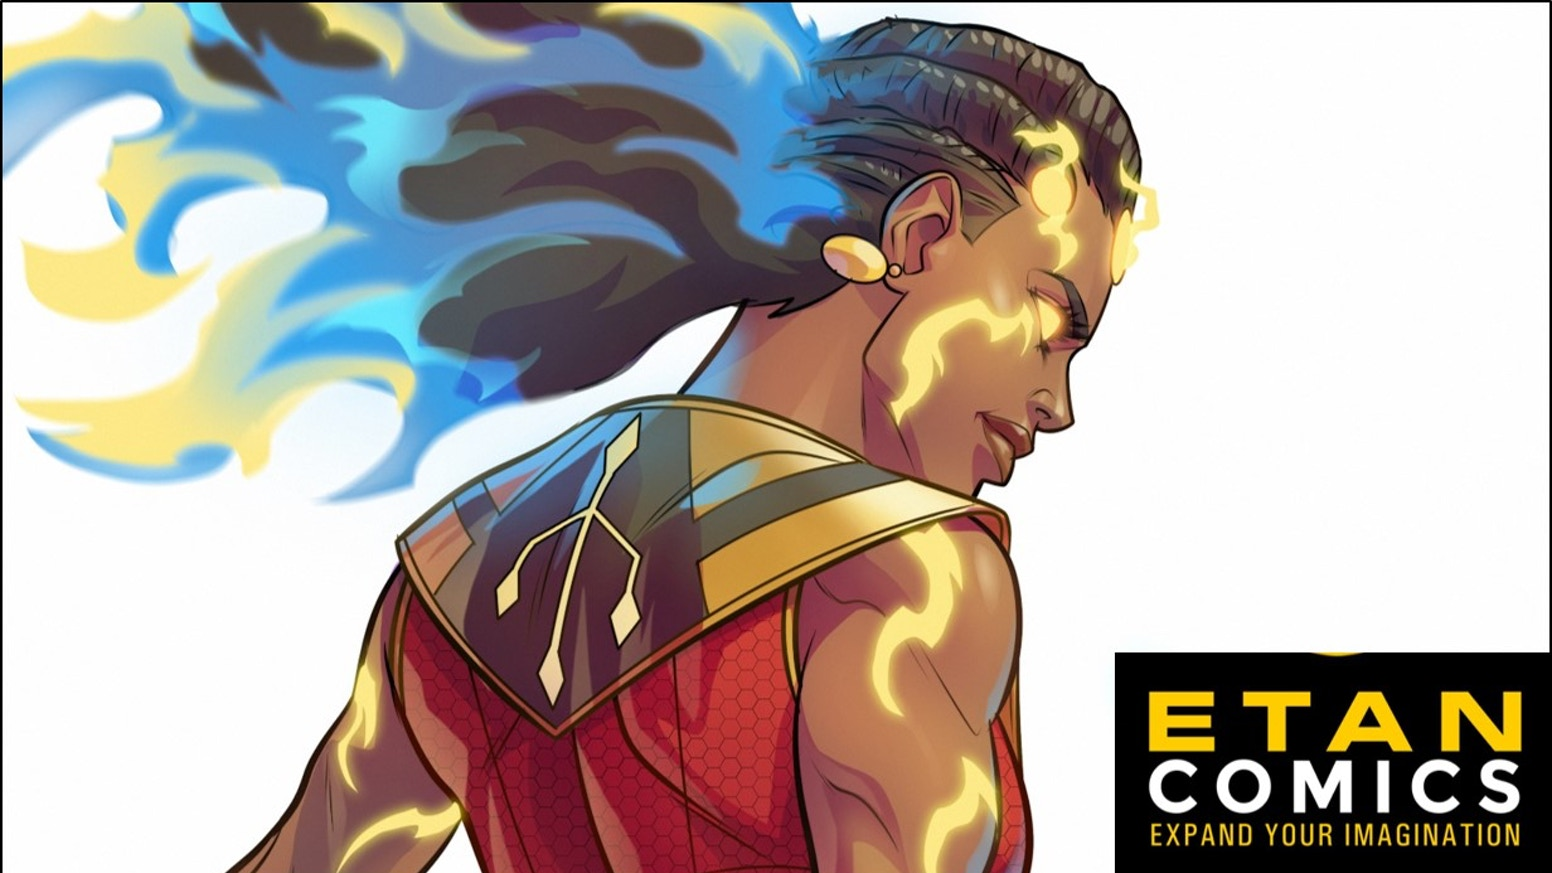 HAWI #1: Historical Fantasy featuring an African Superhero